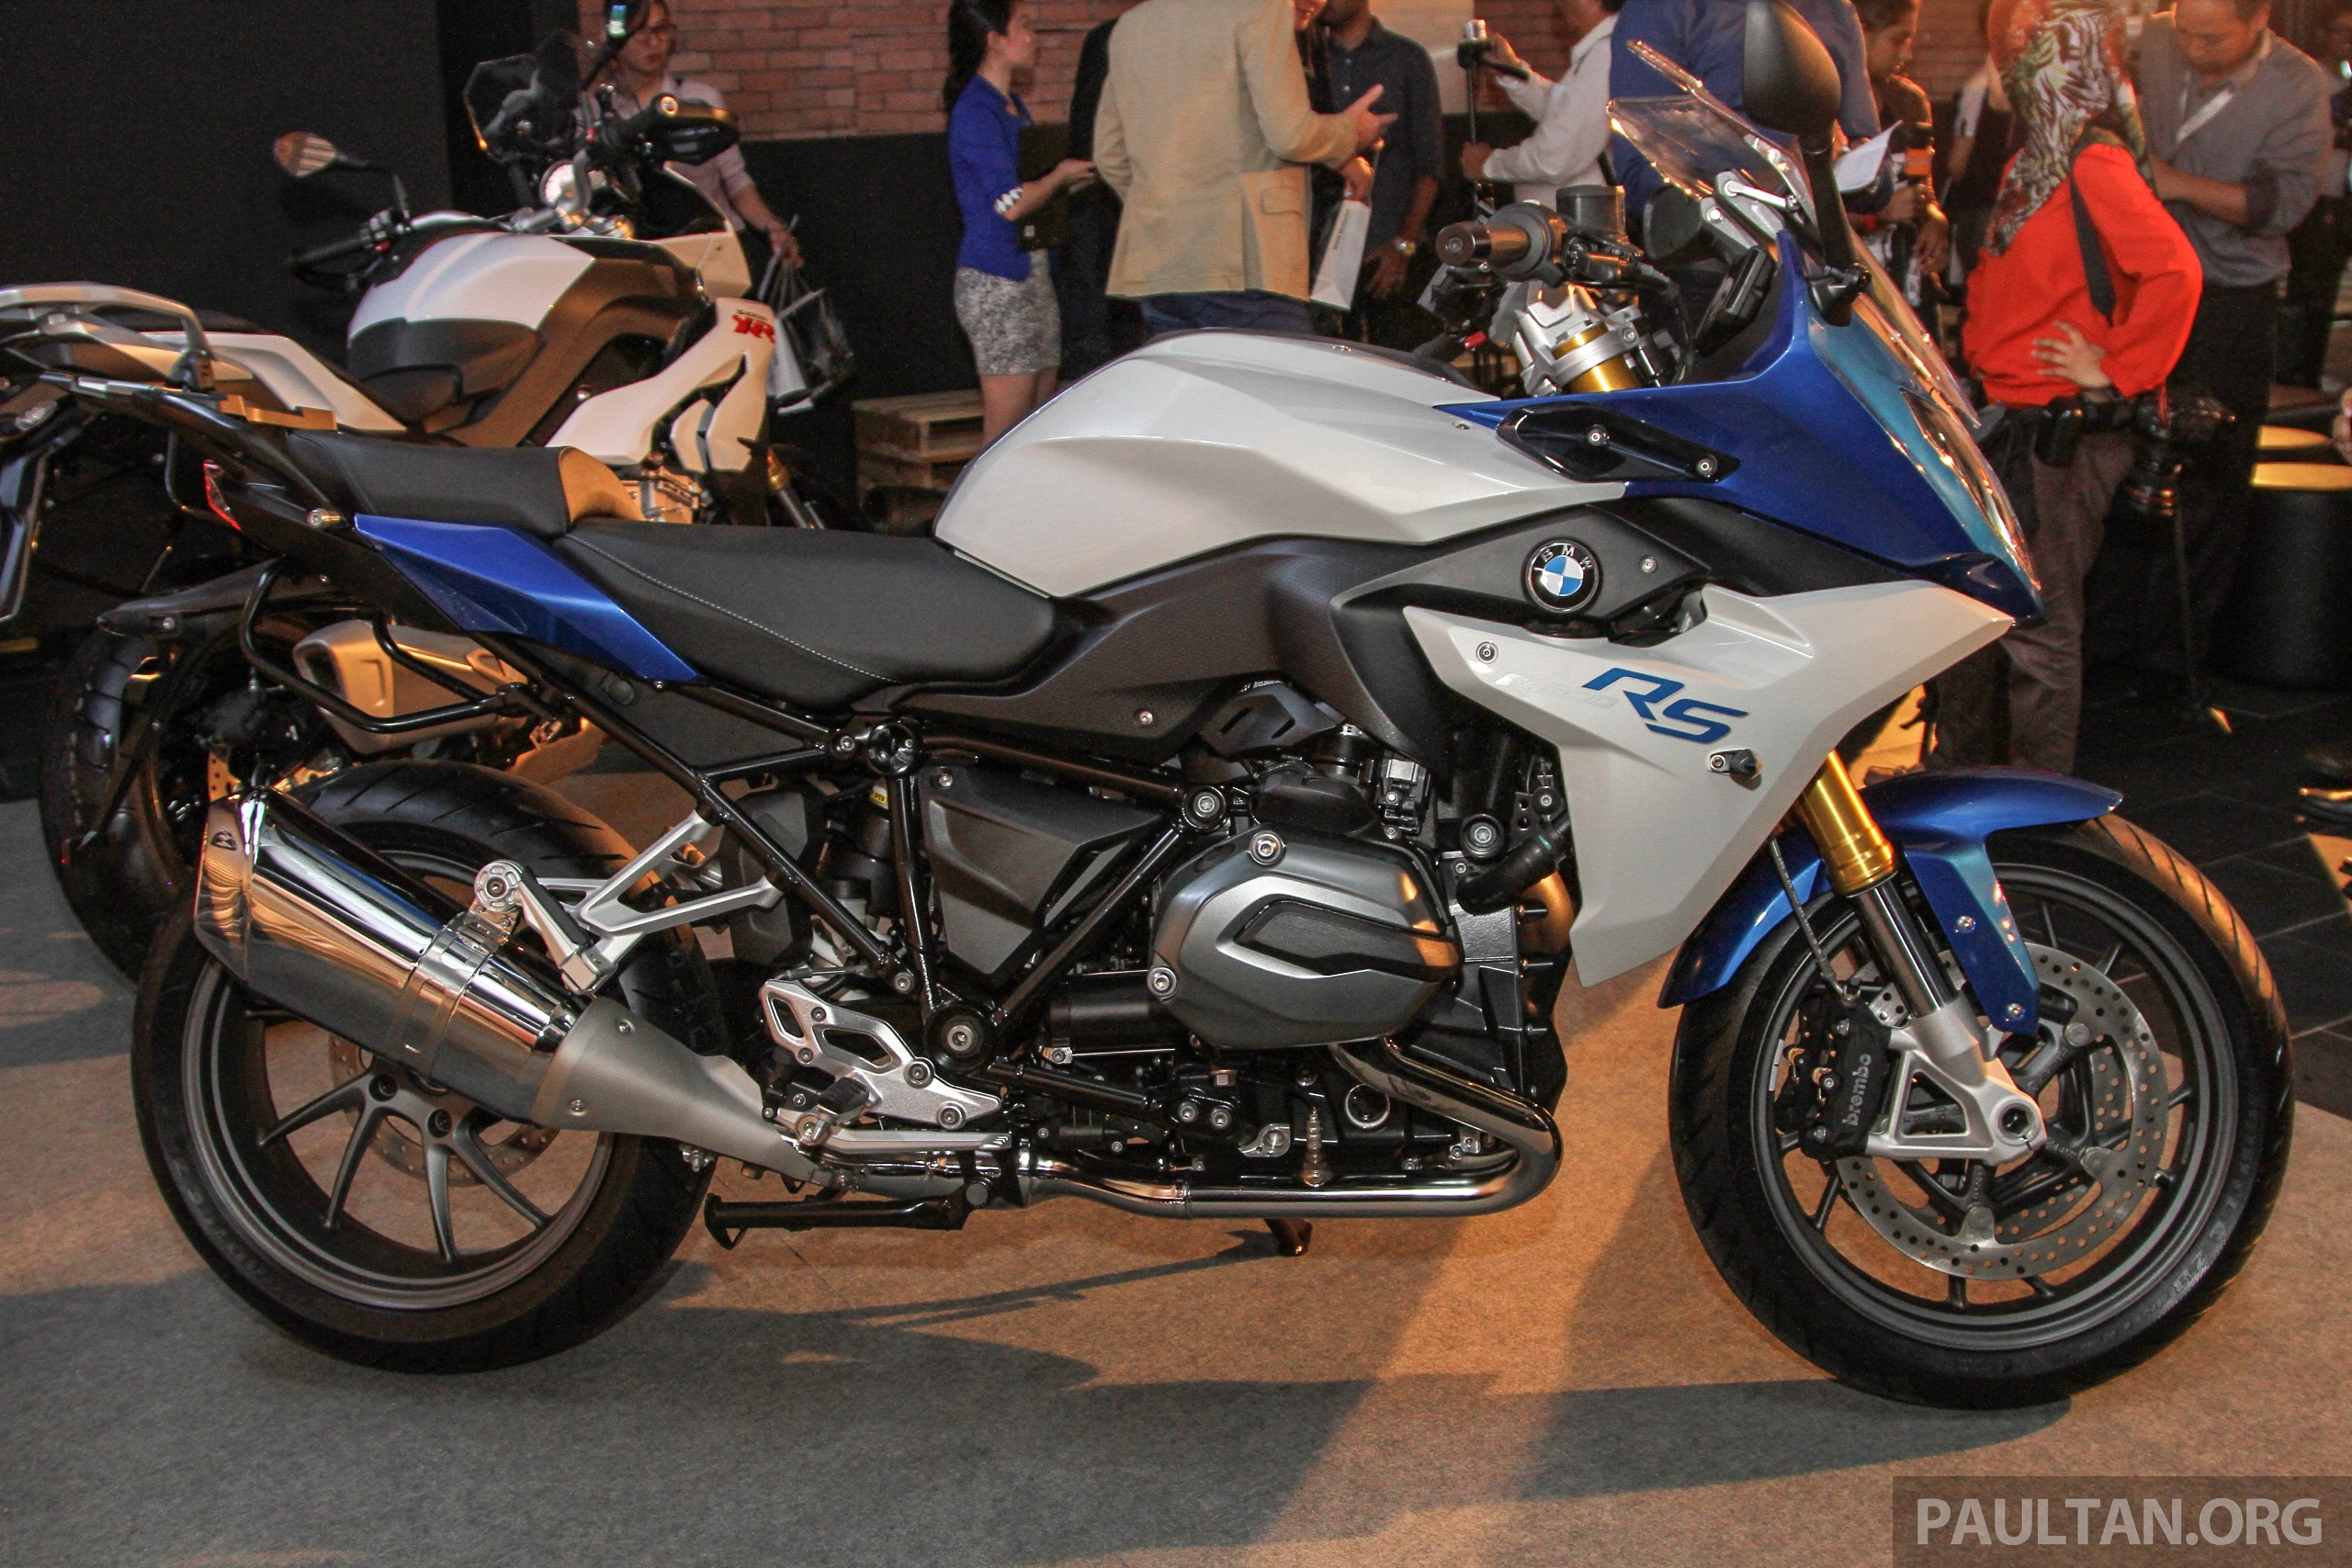 Bmw S 1000 Xr R 1200 Rs Launched From Rm102k Image 361024